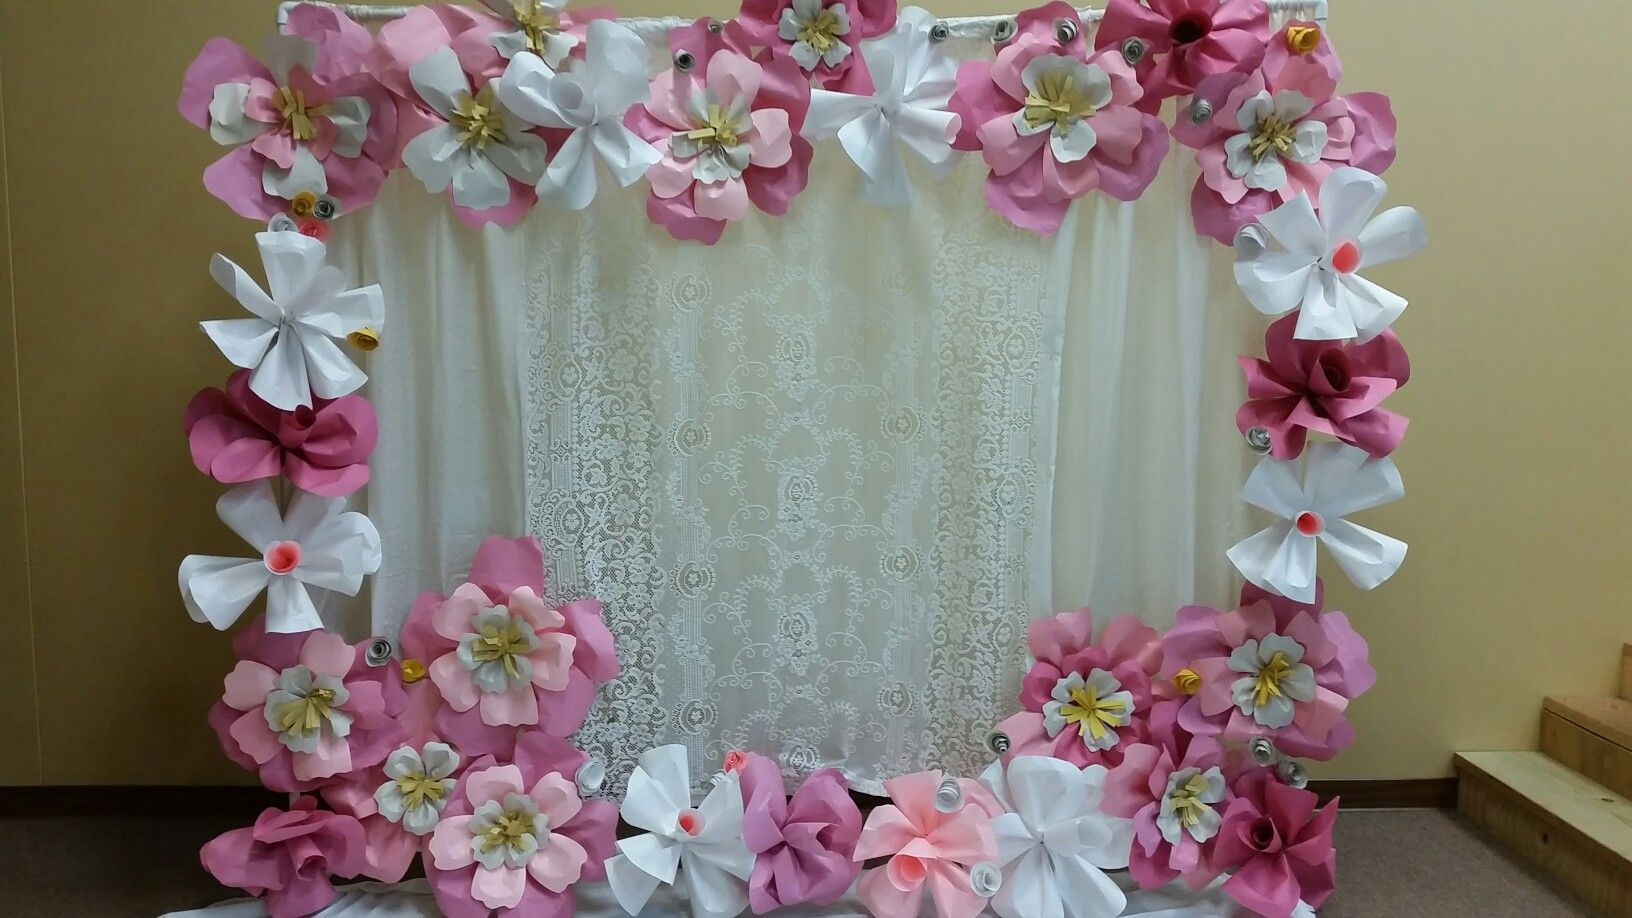 Diy large paper flowers and diy pvc pipe backdrop stand #pvcpipebackdrop Diy large paper flowers and diy pvc pipe backdrop stand #pvcpipebackdrop